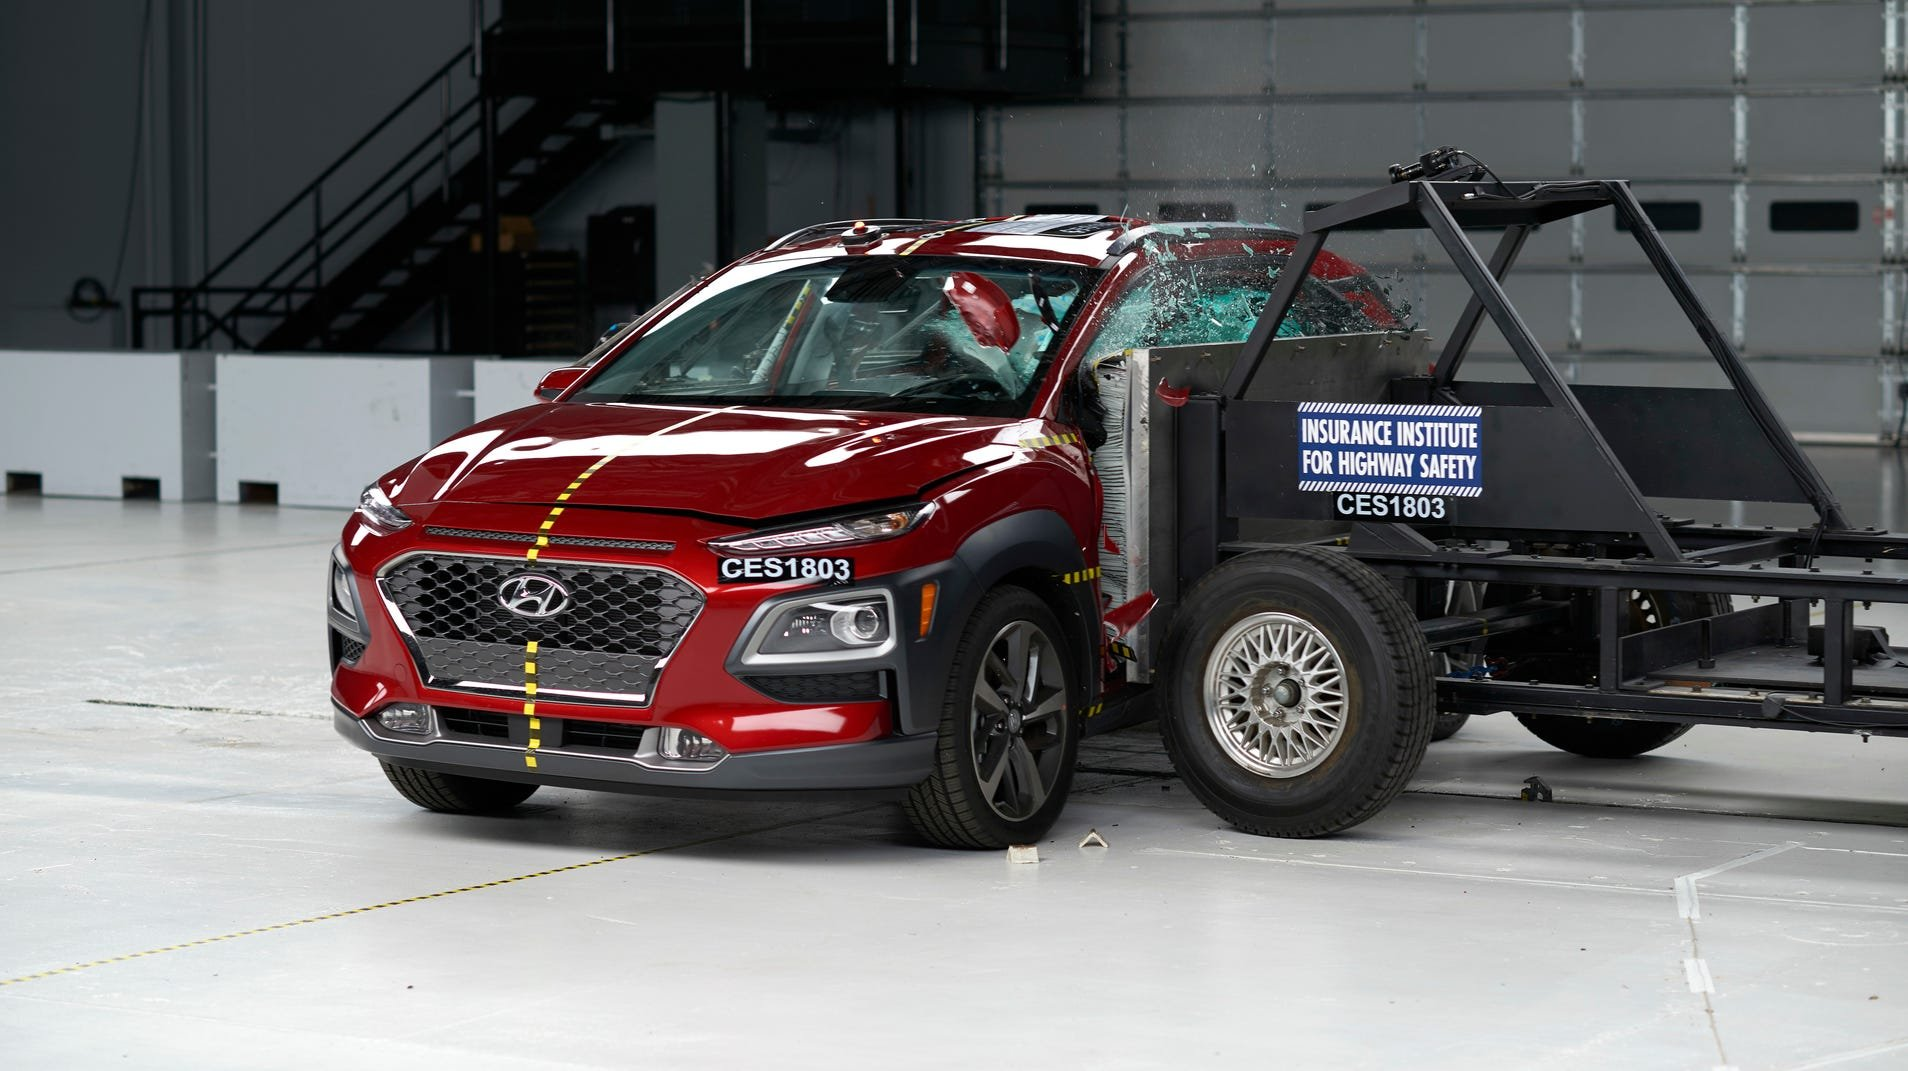 """The 2018 Hyundai Kona, which the IIHS rated as """"Good"""" in its side test."""